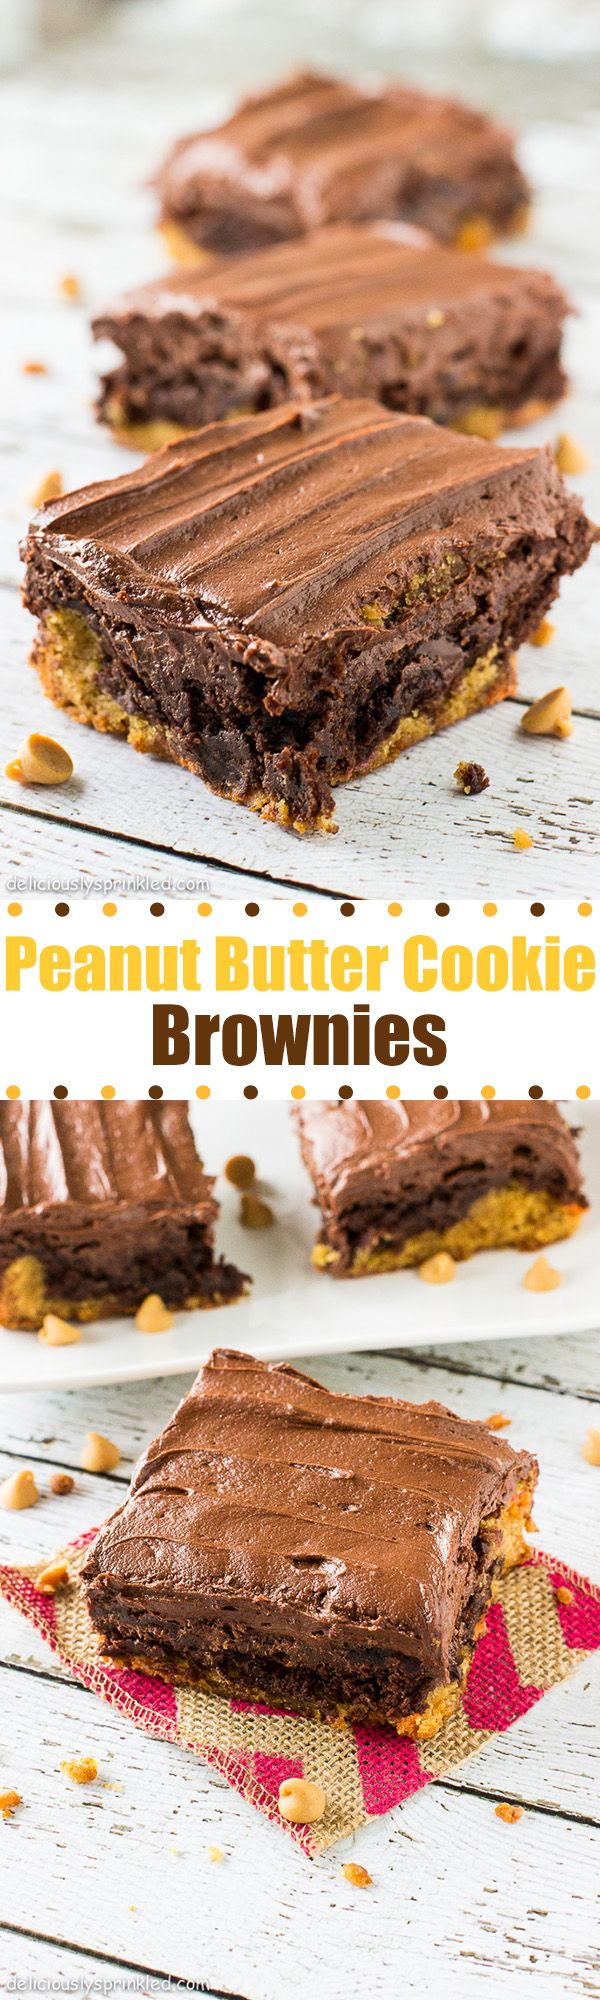 Peanut Butter Cookie Brownies- these are the BEST brownies EVER!